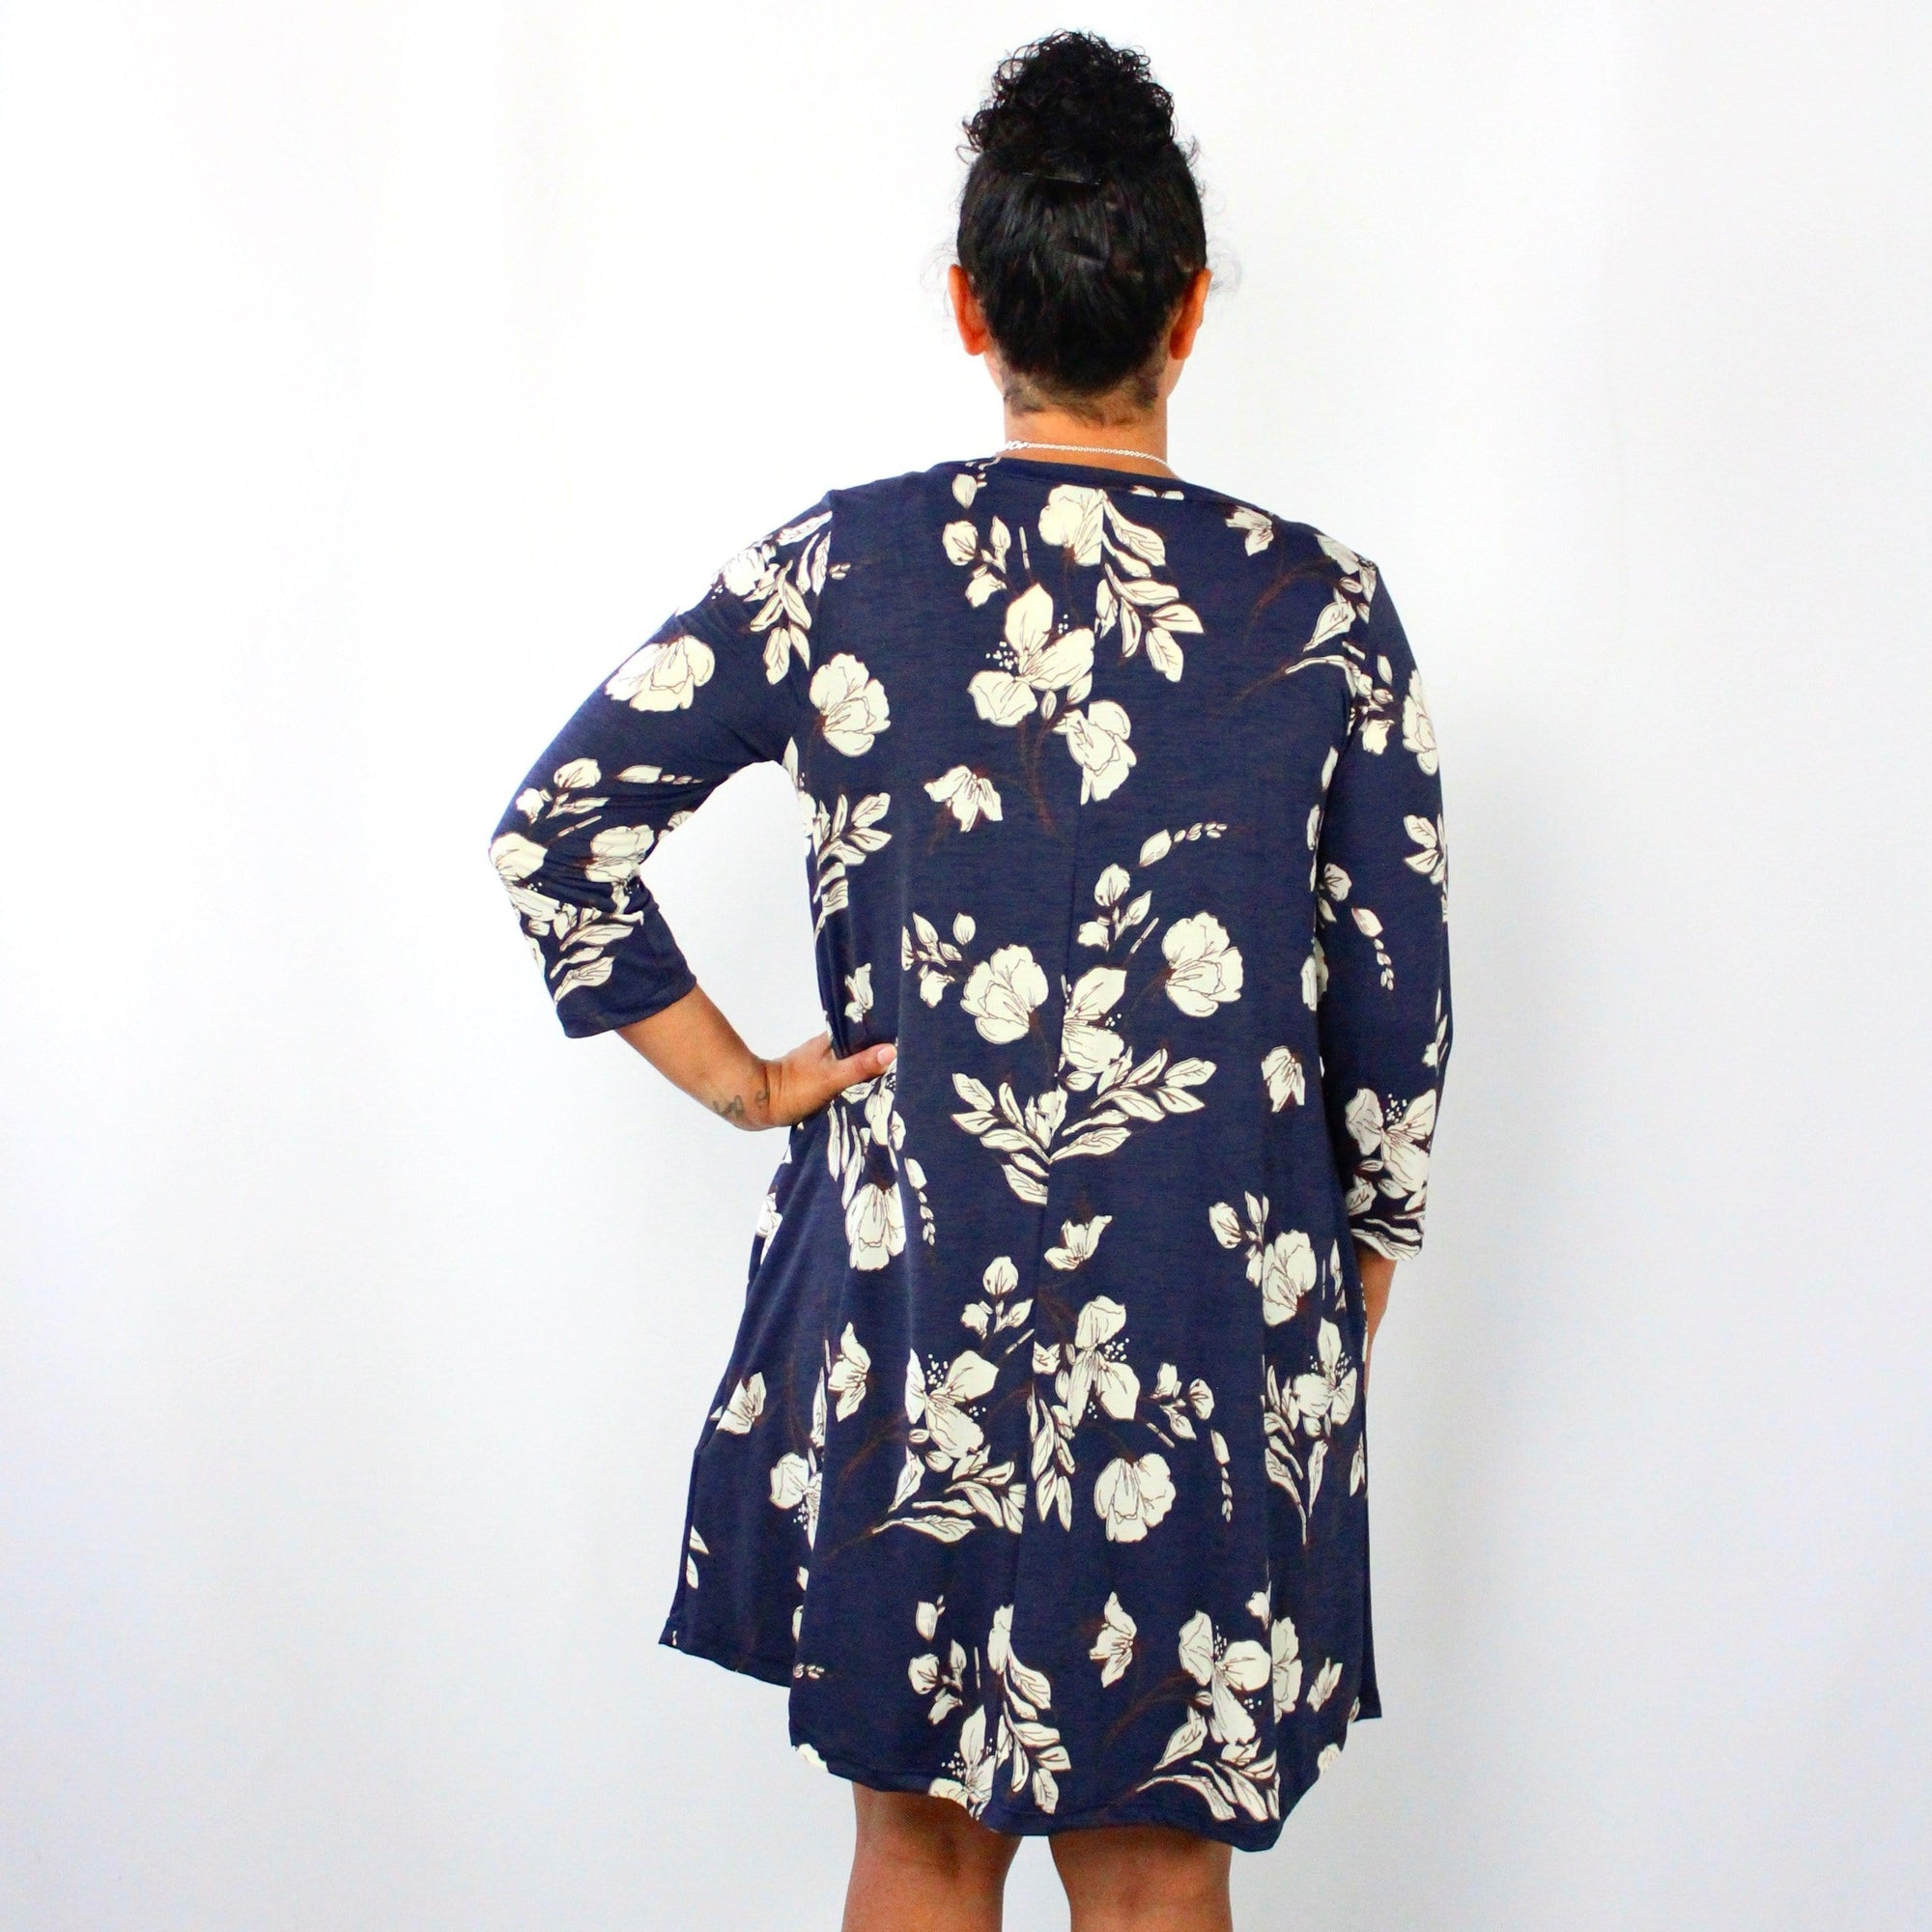 Navy Ivory Floral Swing Dress